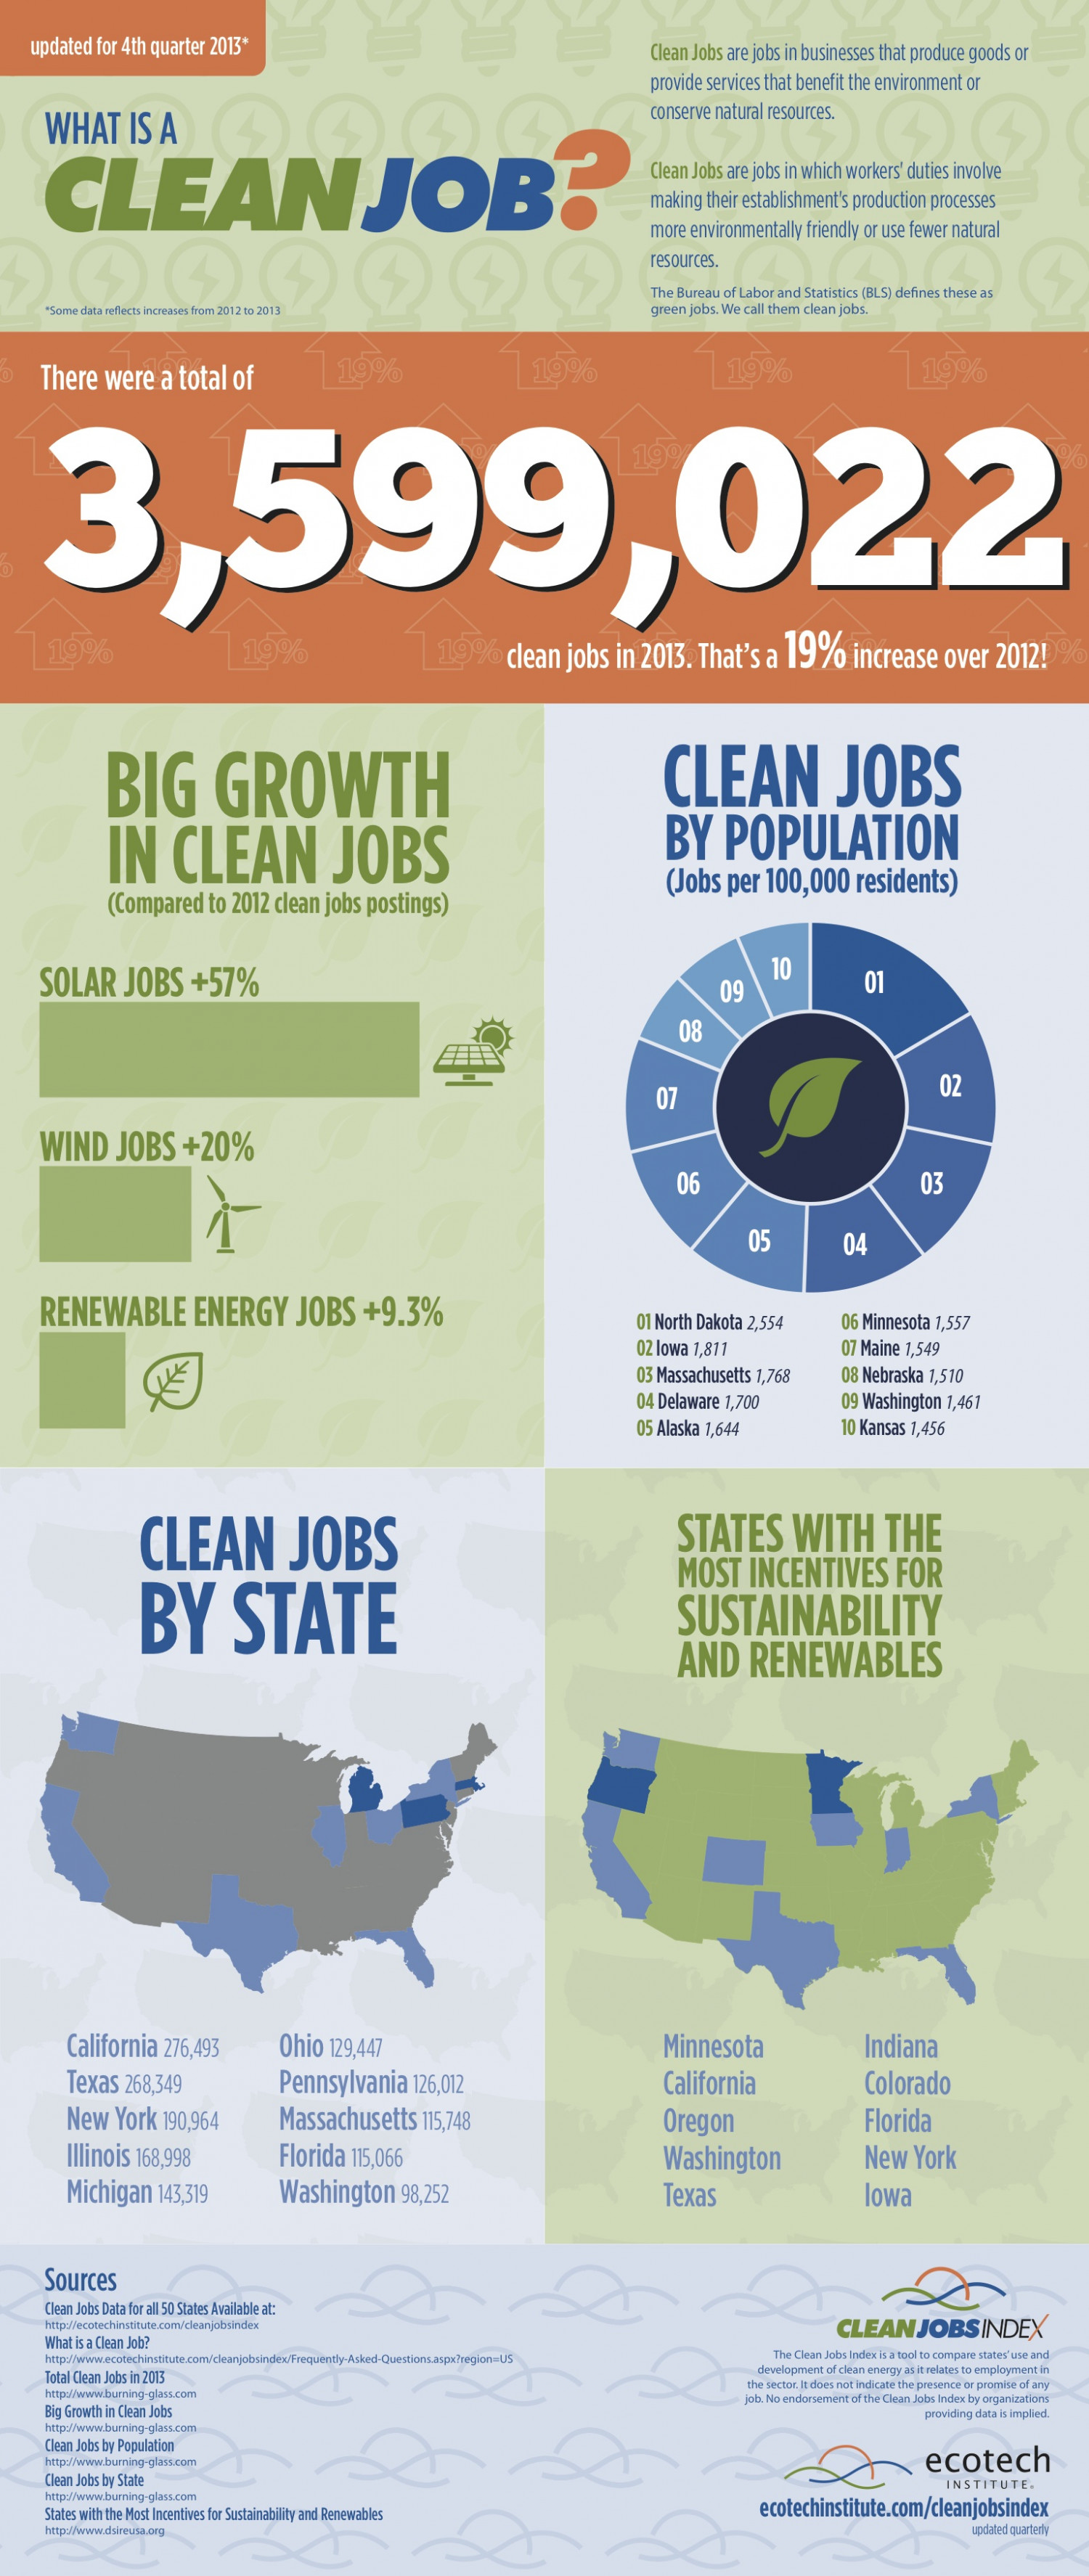 What Is A Clean Job? Infographic